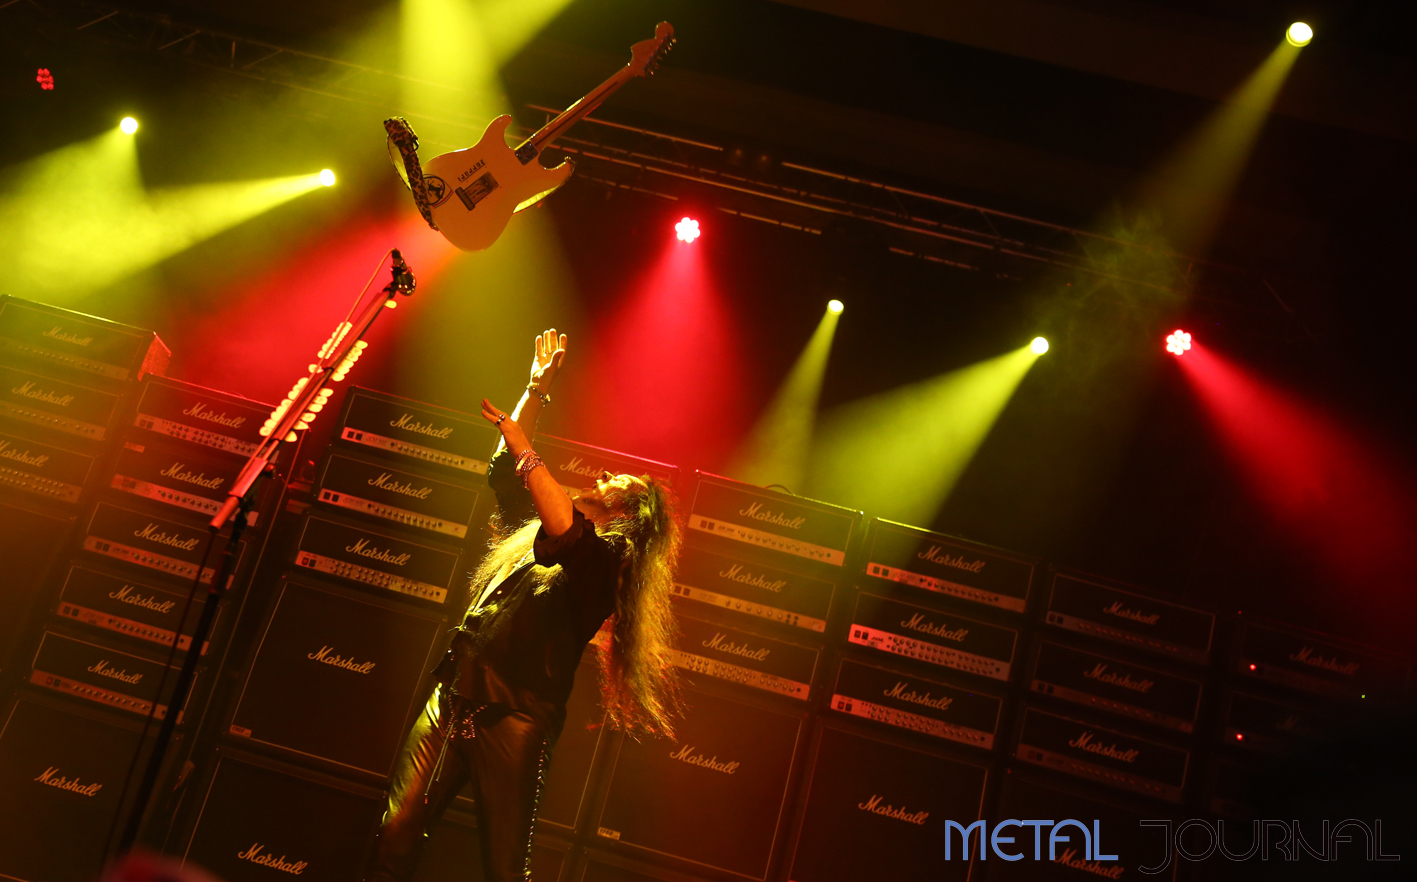 yngwie malmsteen - santander 2018 metal journal pic 2